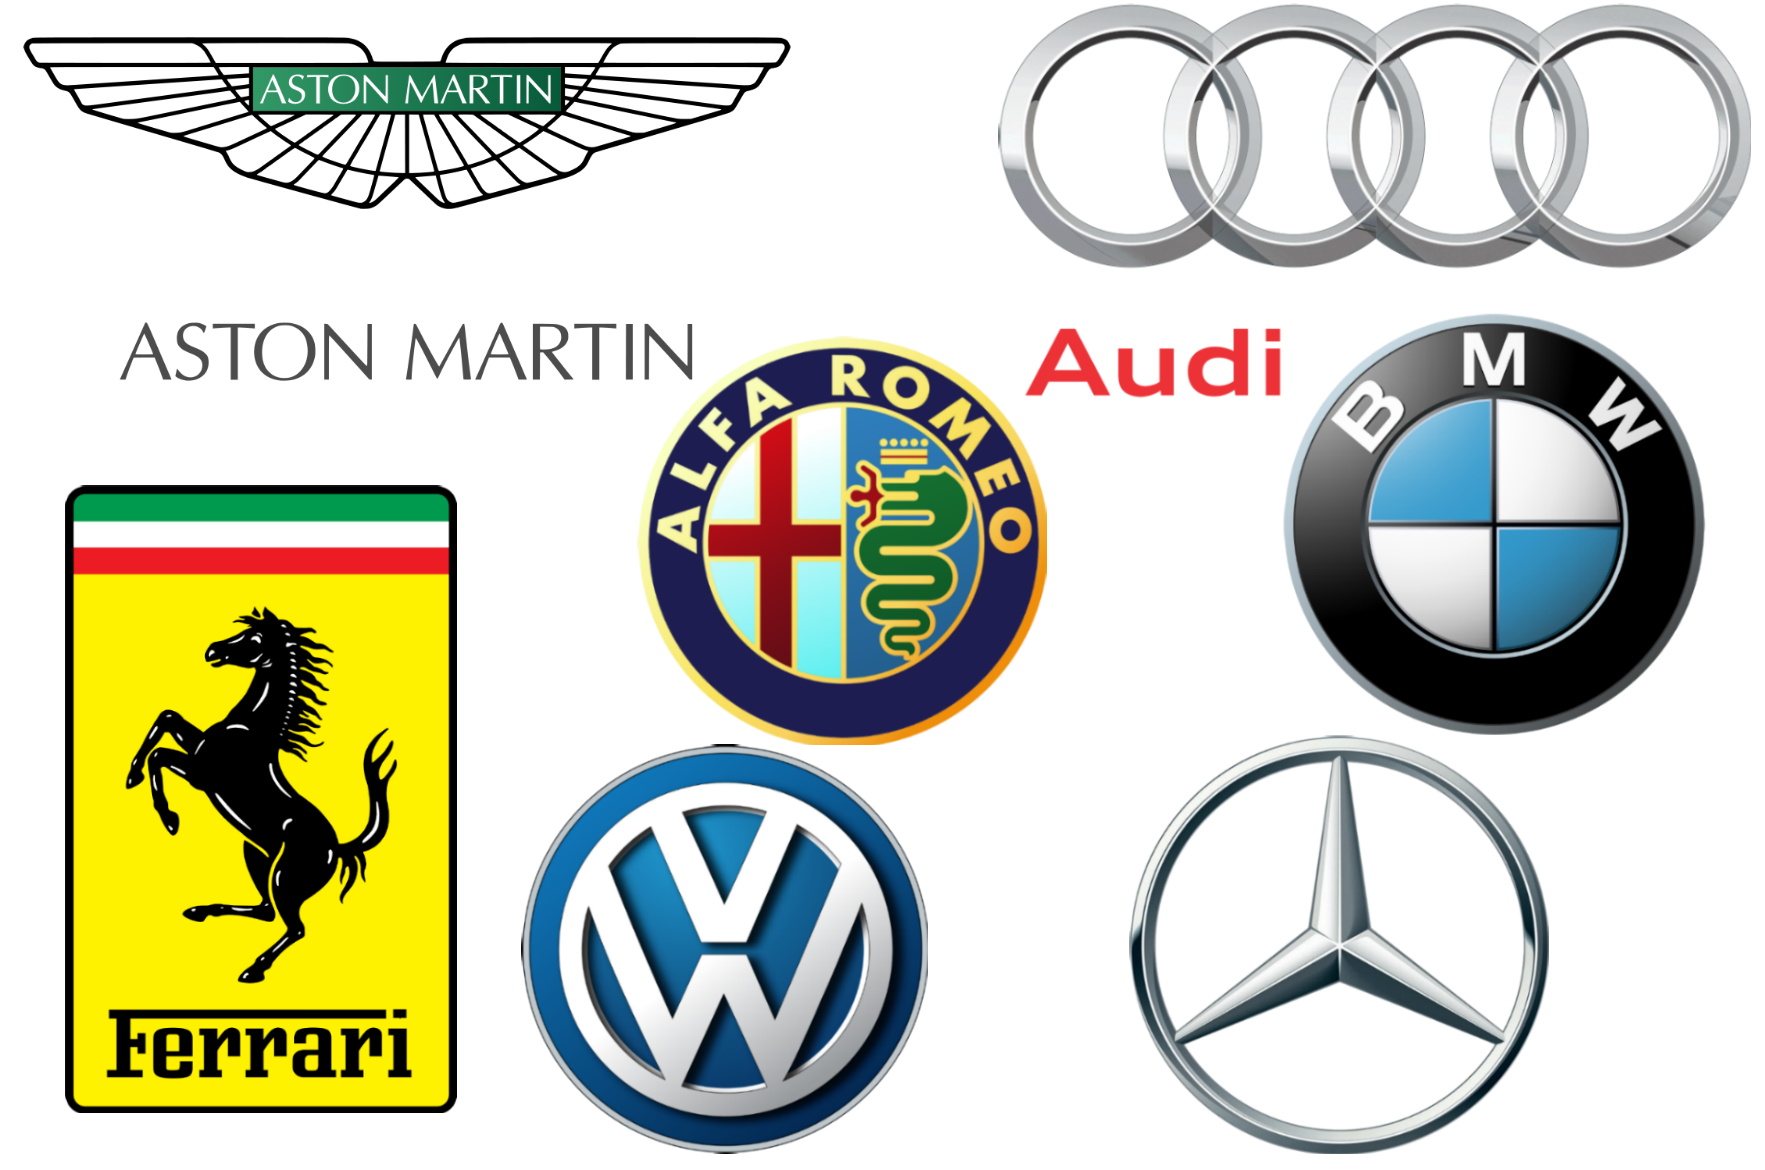 European Car Brands Companies And Manufacturers Car Brand Names